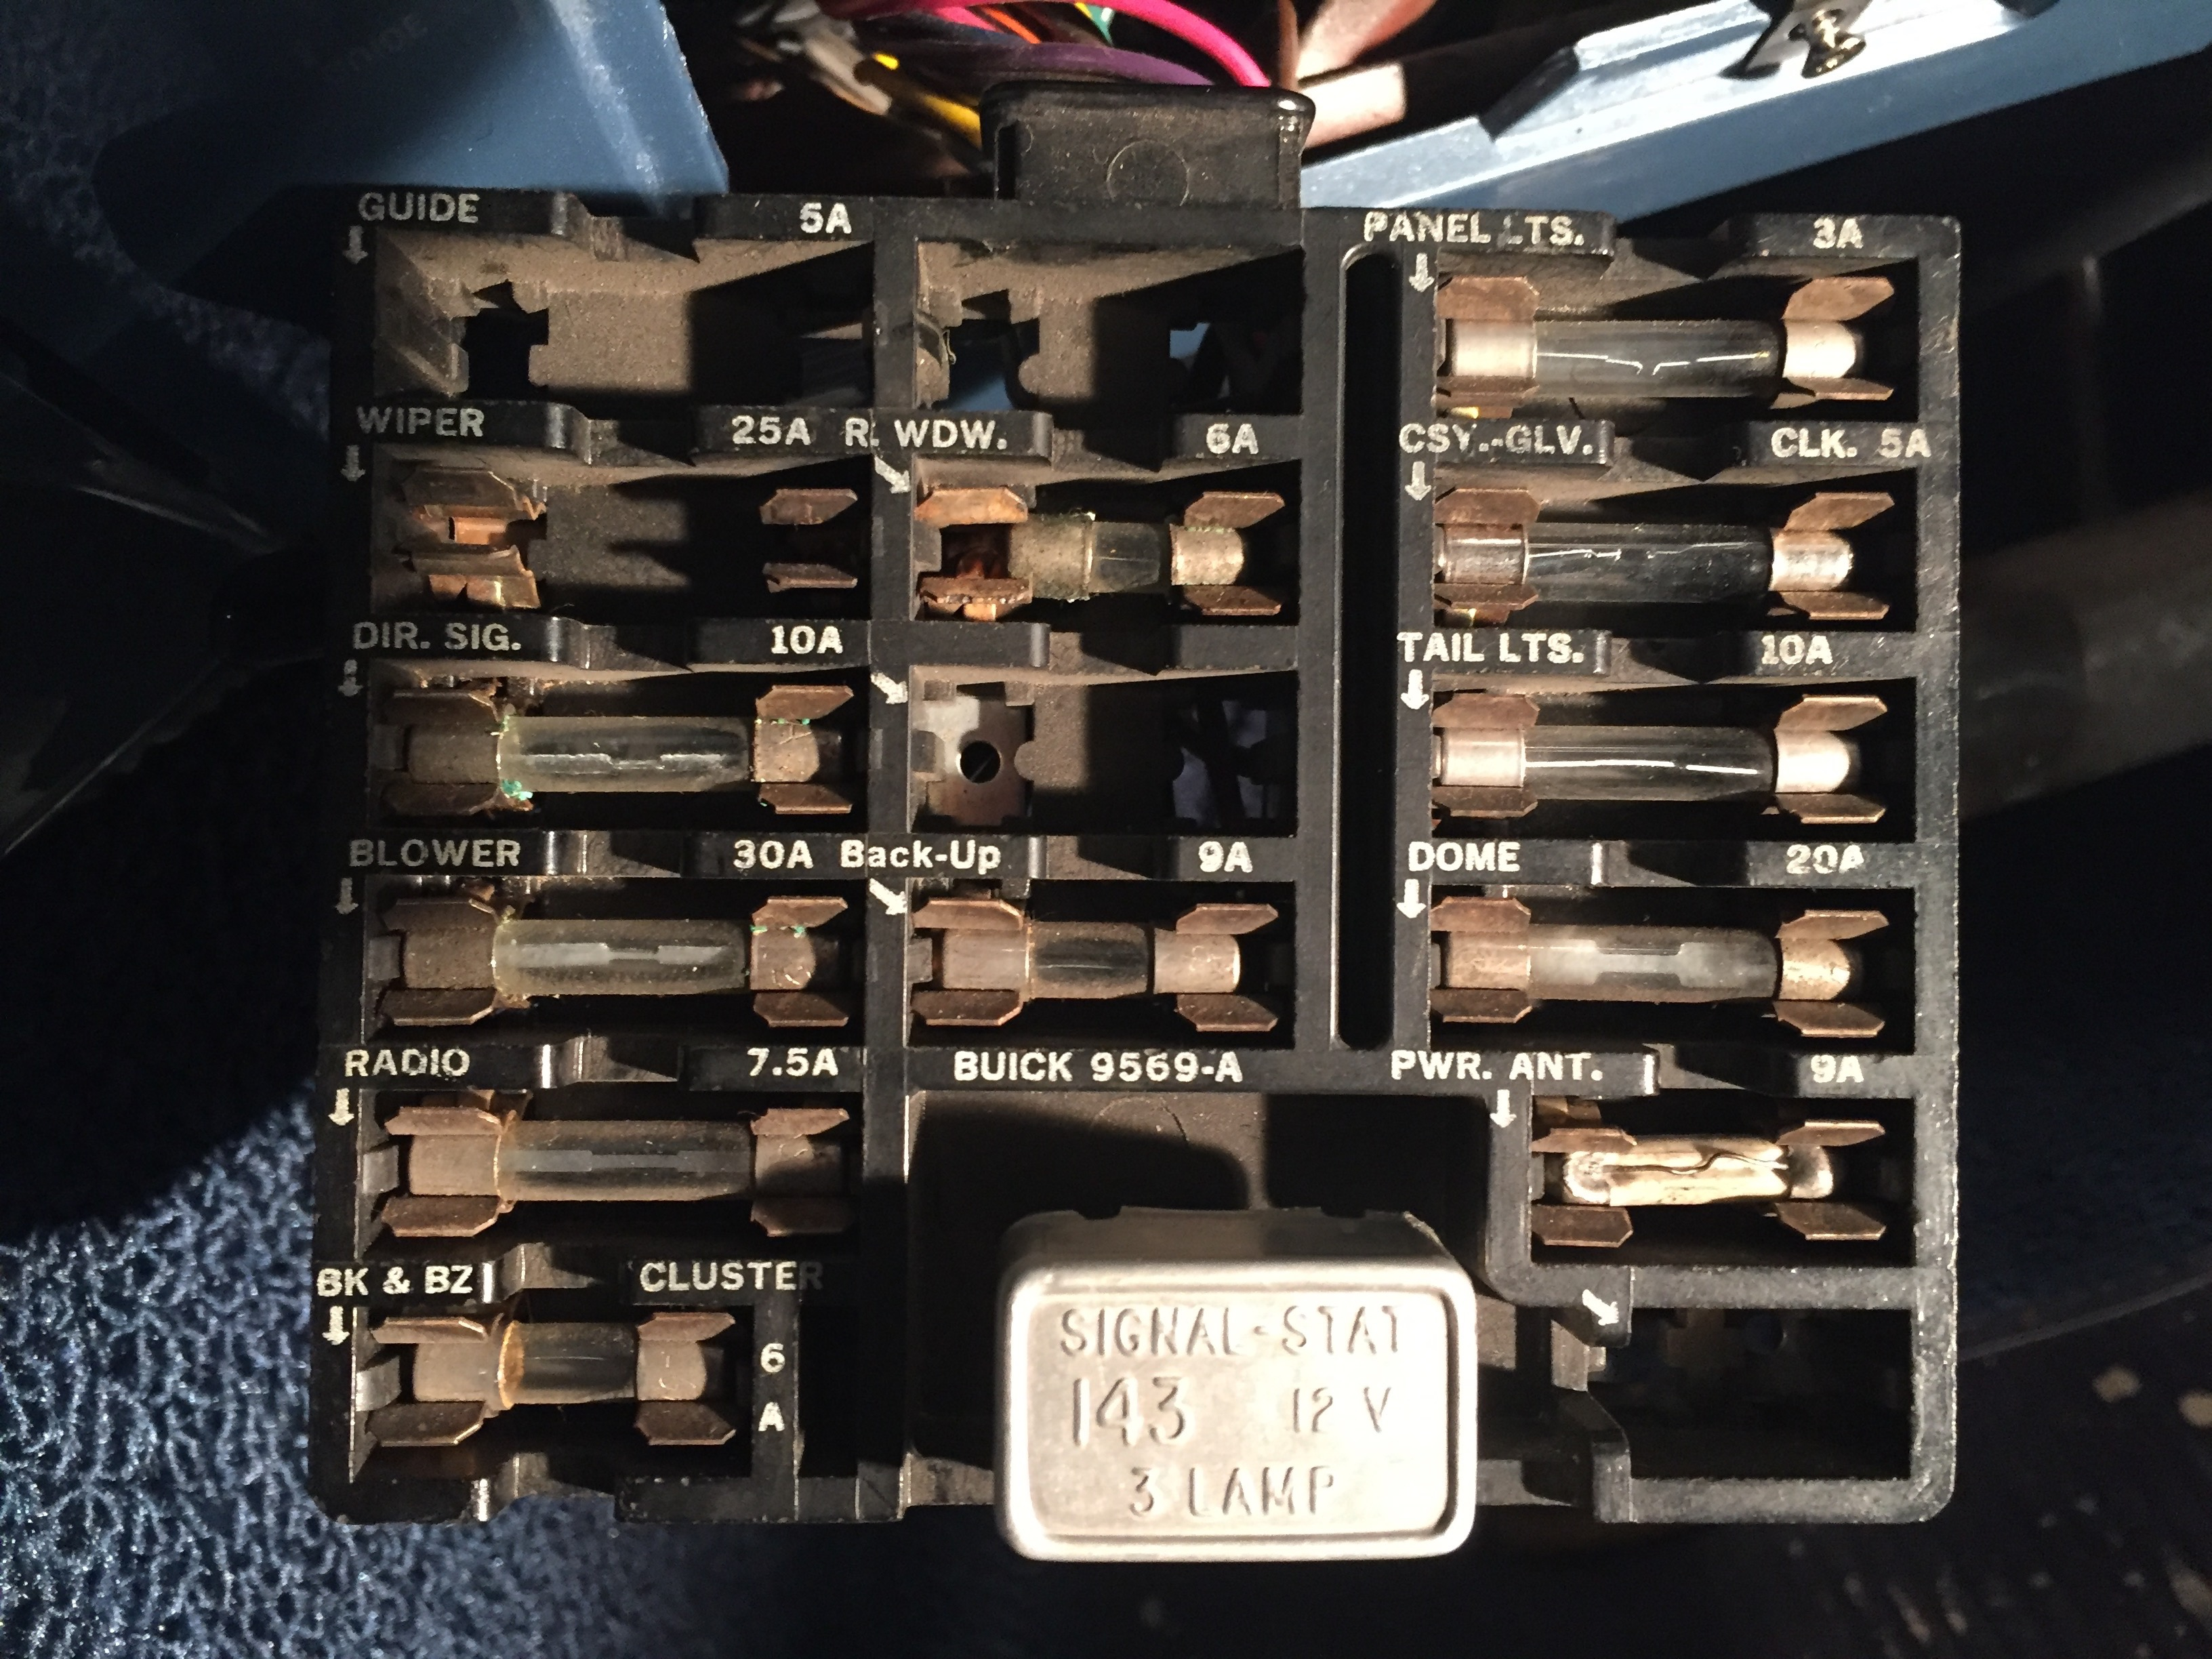 1966 Wiring Diagram 64 Riv Remove Panel From Fuse Box Buick Riviera